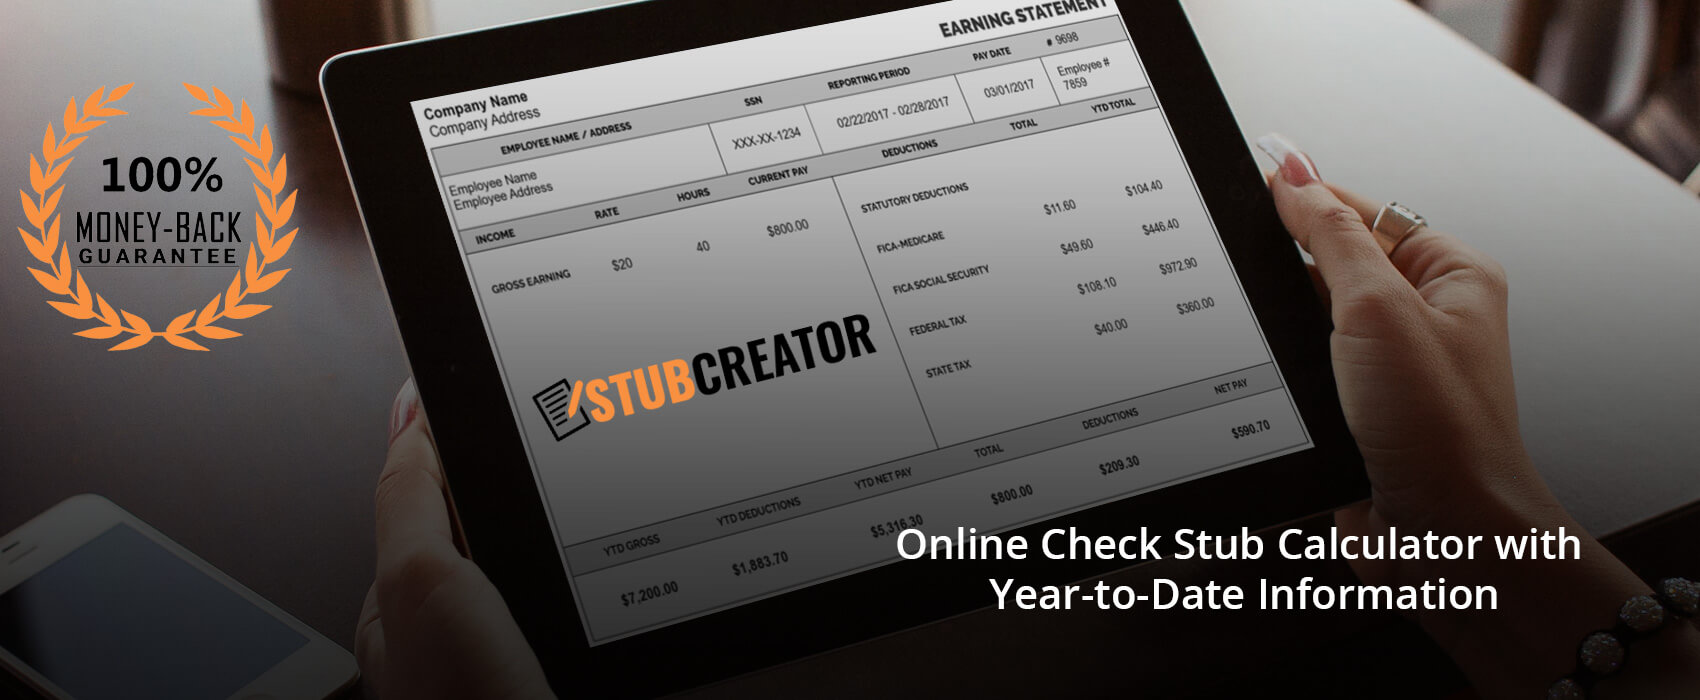 online check stub calculator with year to date information